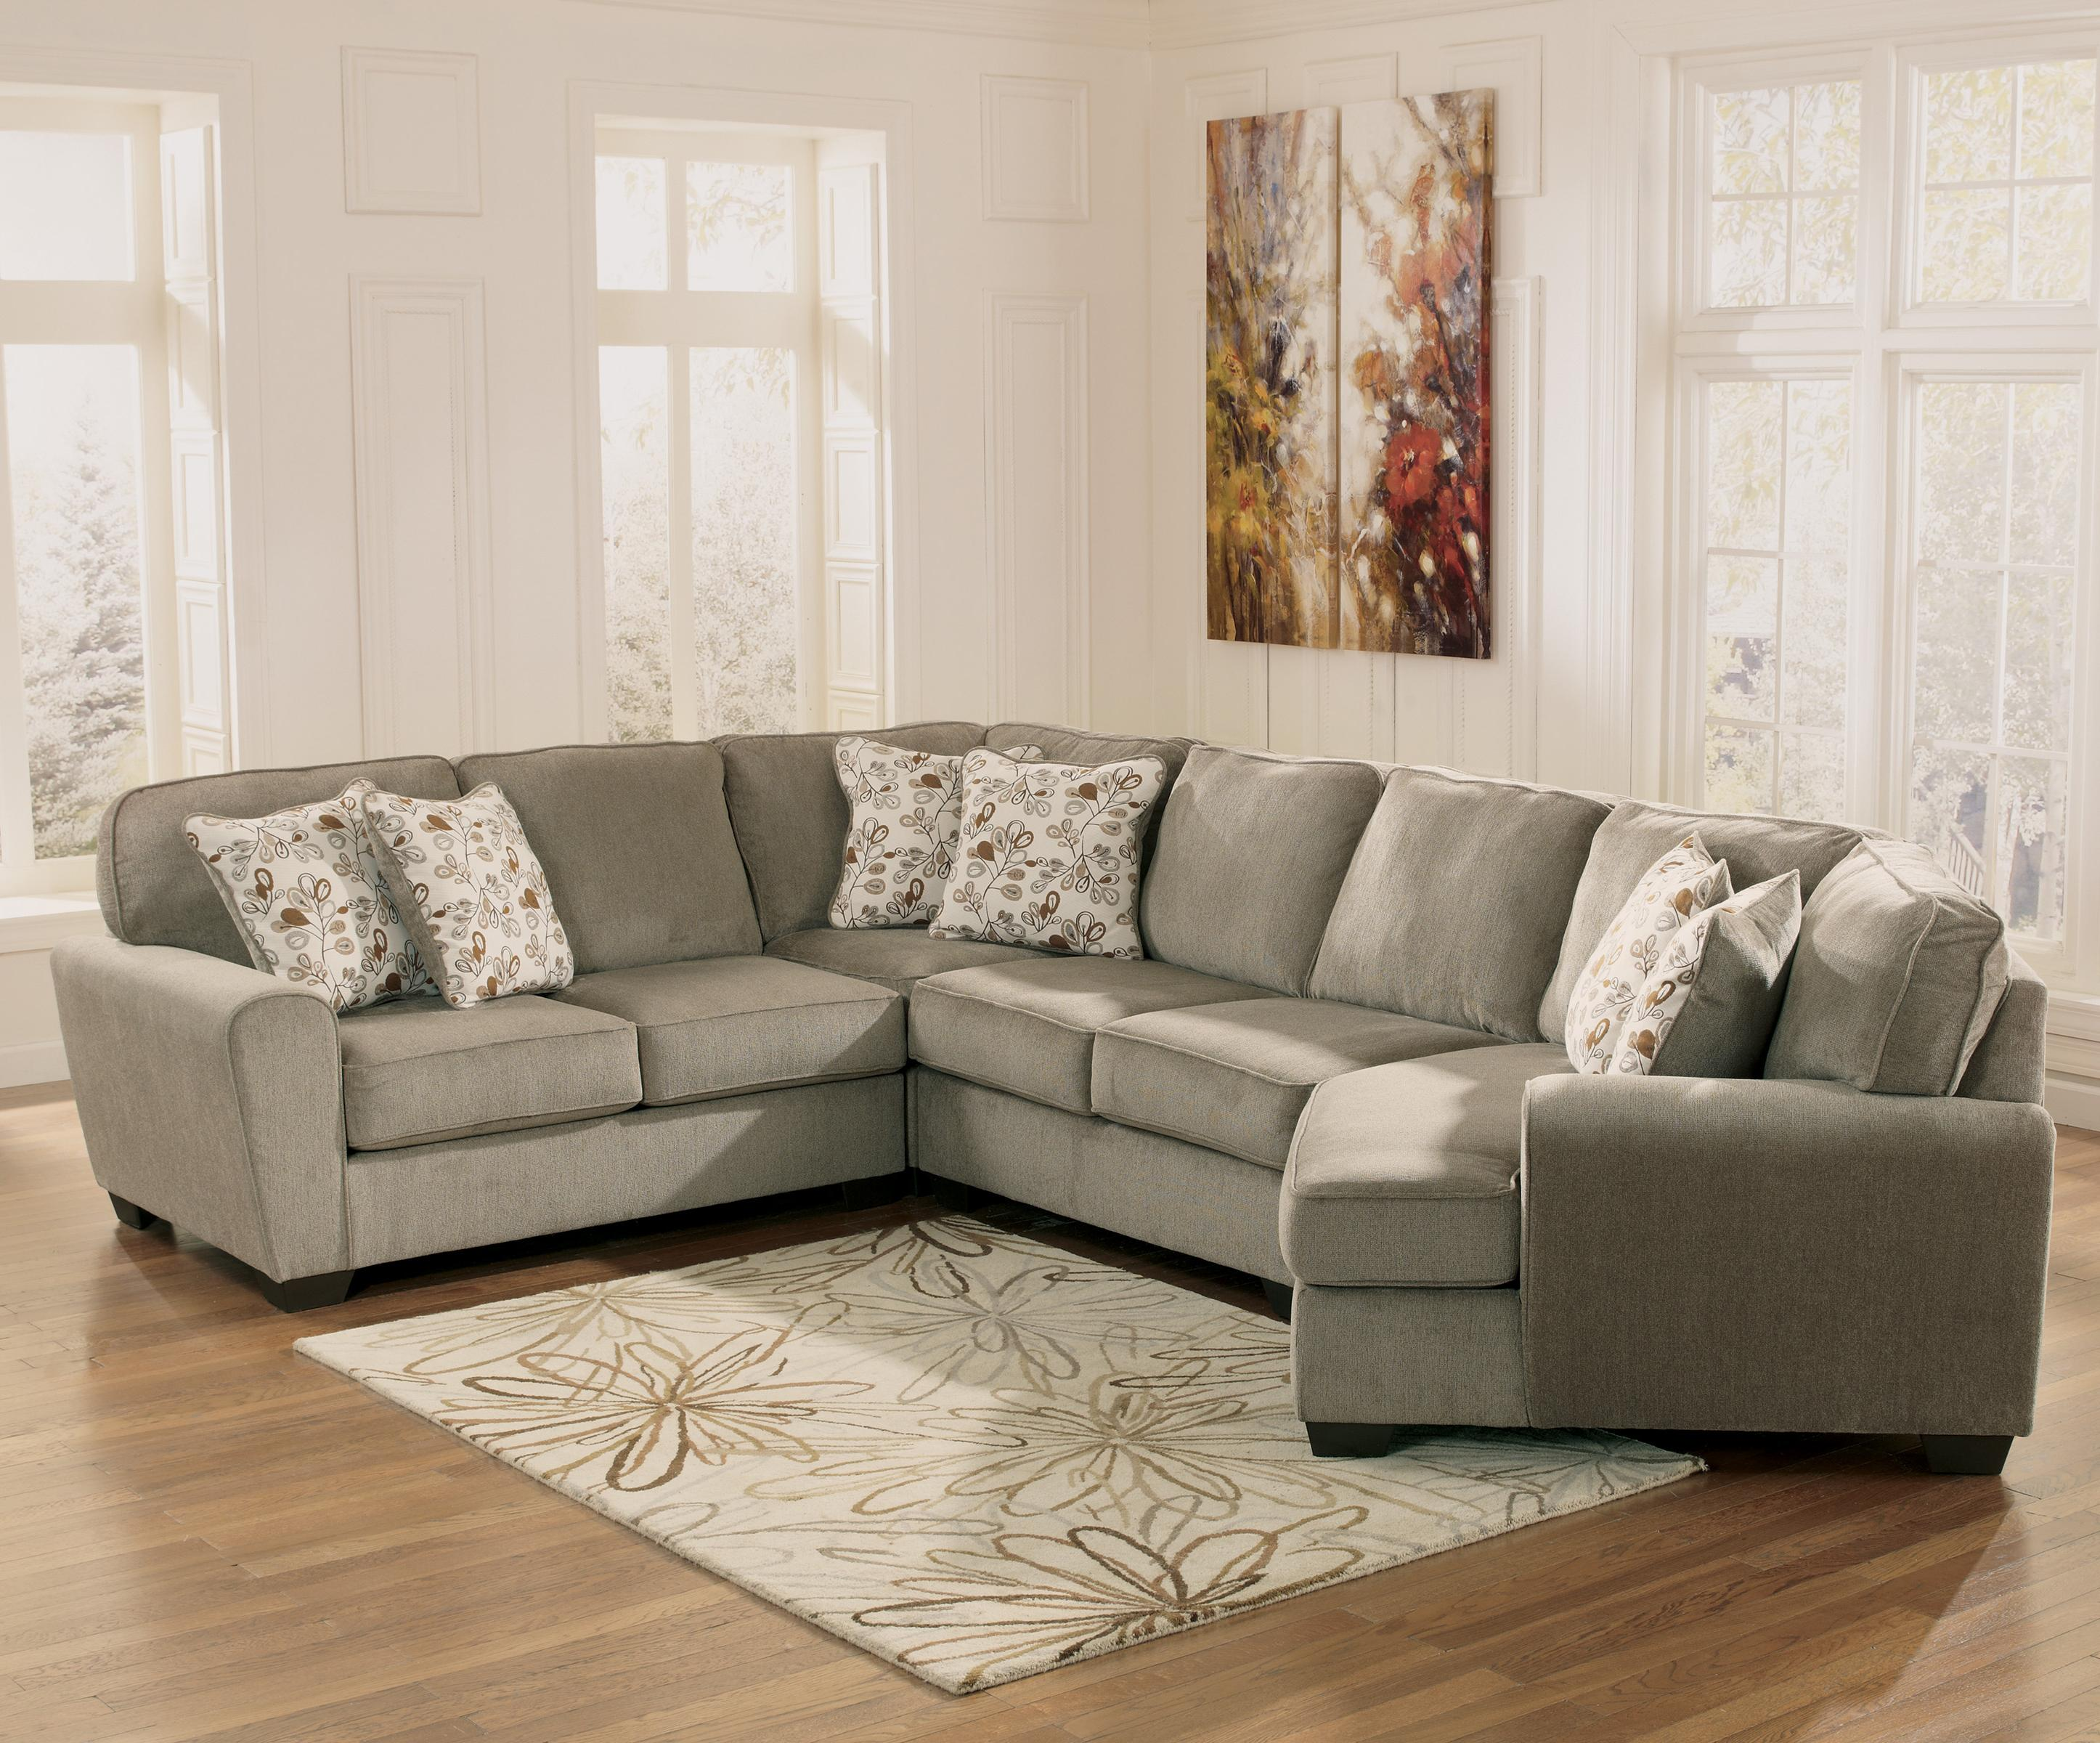 Patola Park - Patina 4-Piece Small Sectional with Right Cuddler by Ashley Furniture at Lapeer Furniture & Mattress Center